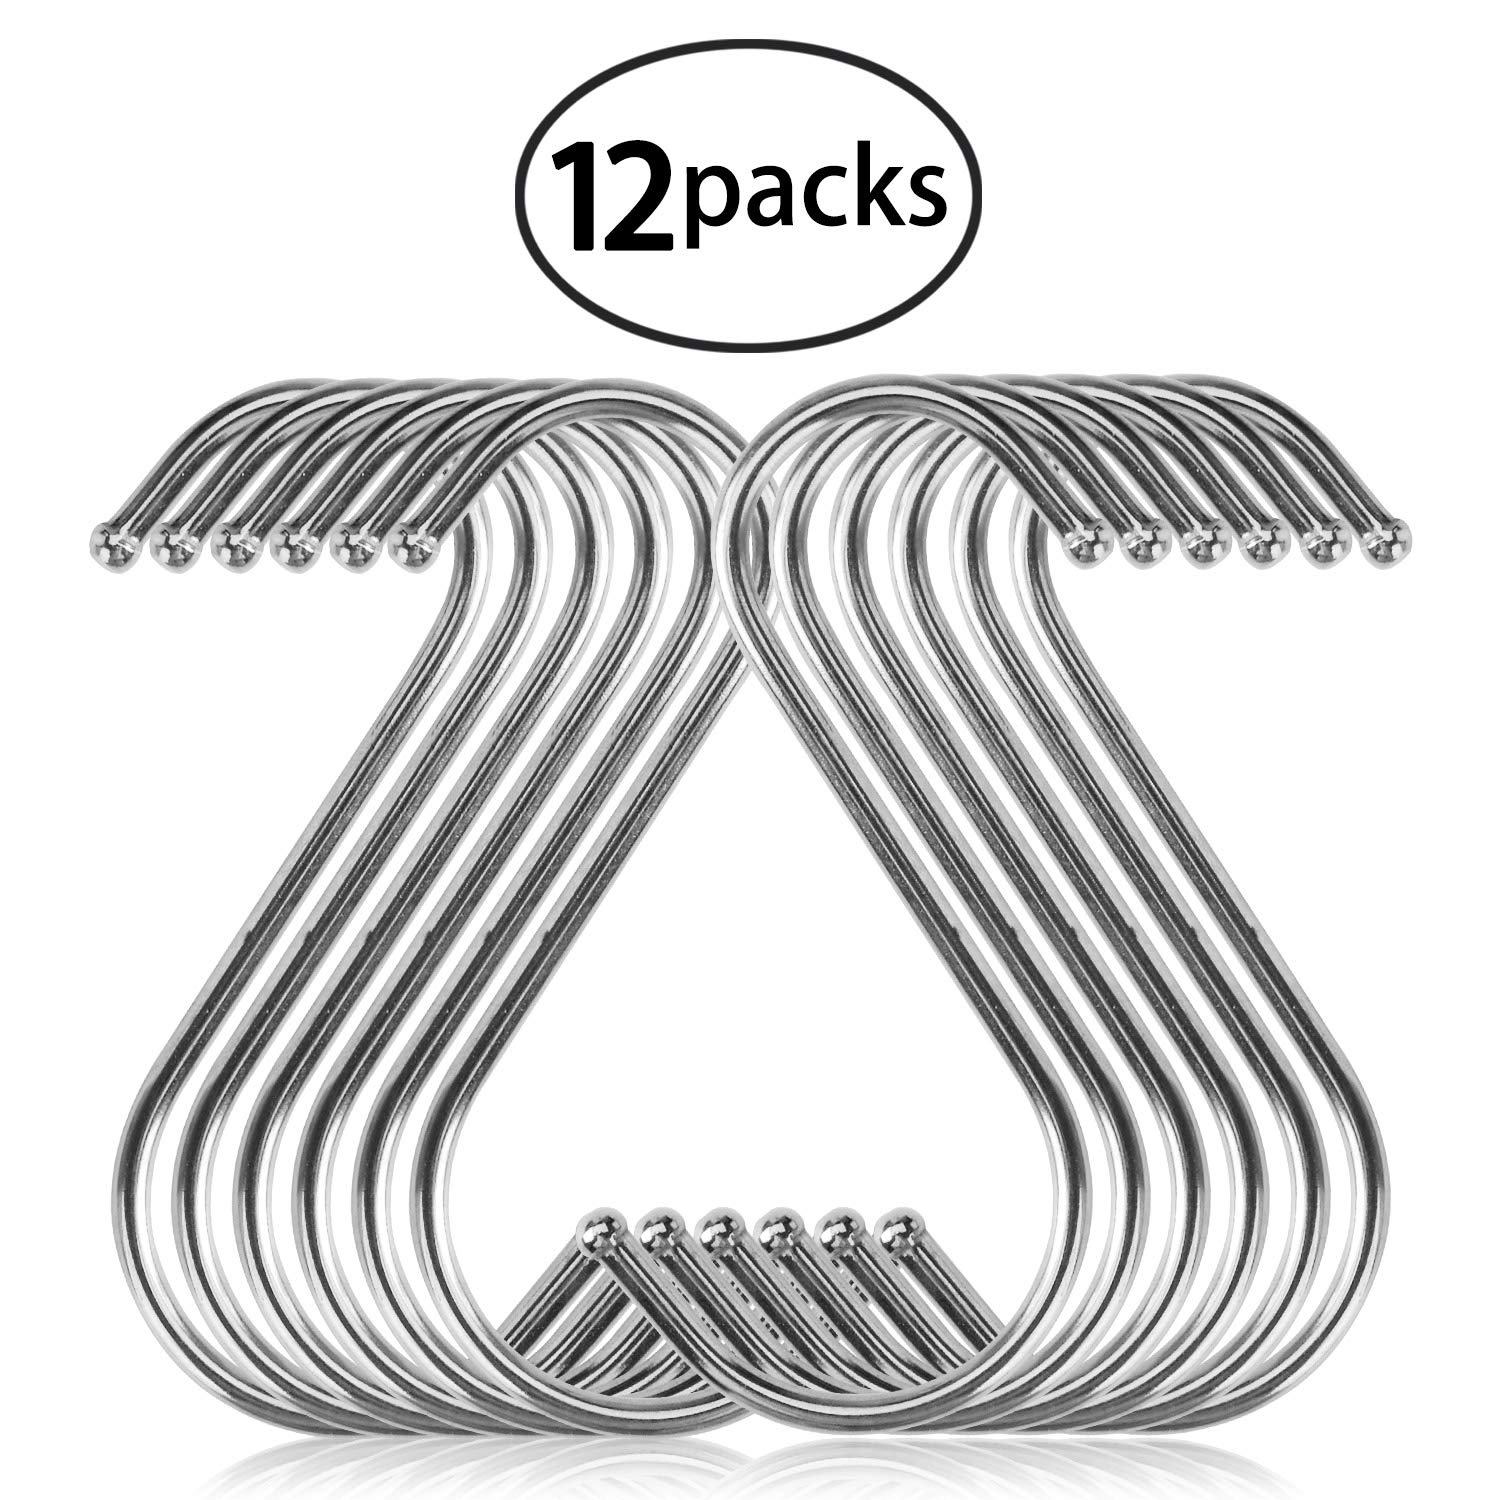 12 Pack S Hooks YBWM S Shaped Anti Rust Stainless Steel Metal Hooks Hanger for Kitchen Work Shop Bathroom Garden Hanging Clothing Bags Kitchen Utensil Cutting Boards Pots and Pans